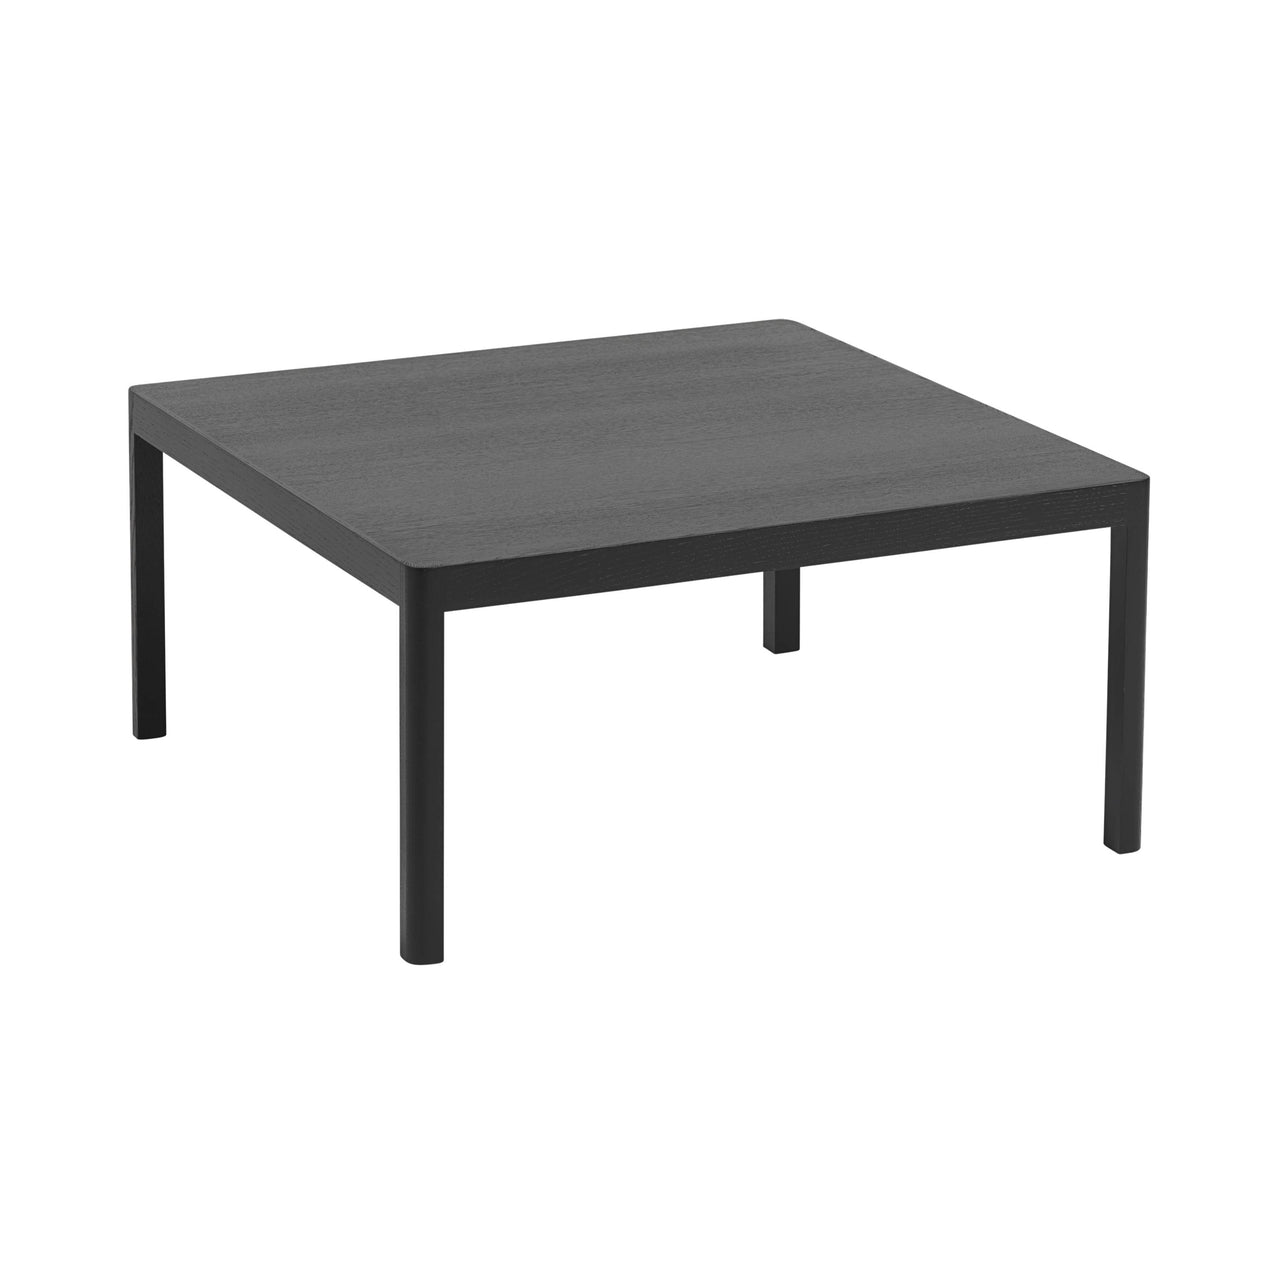 Workshop Coffee Table Square: Black